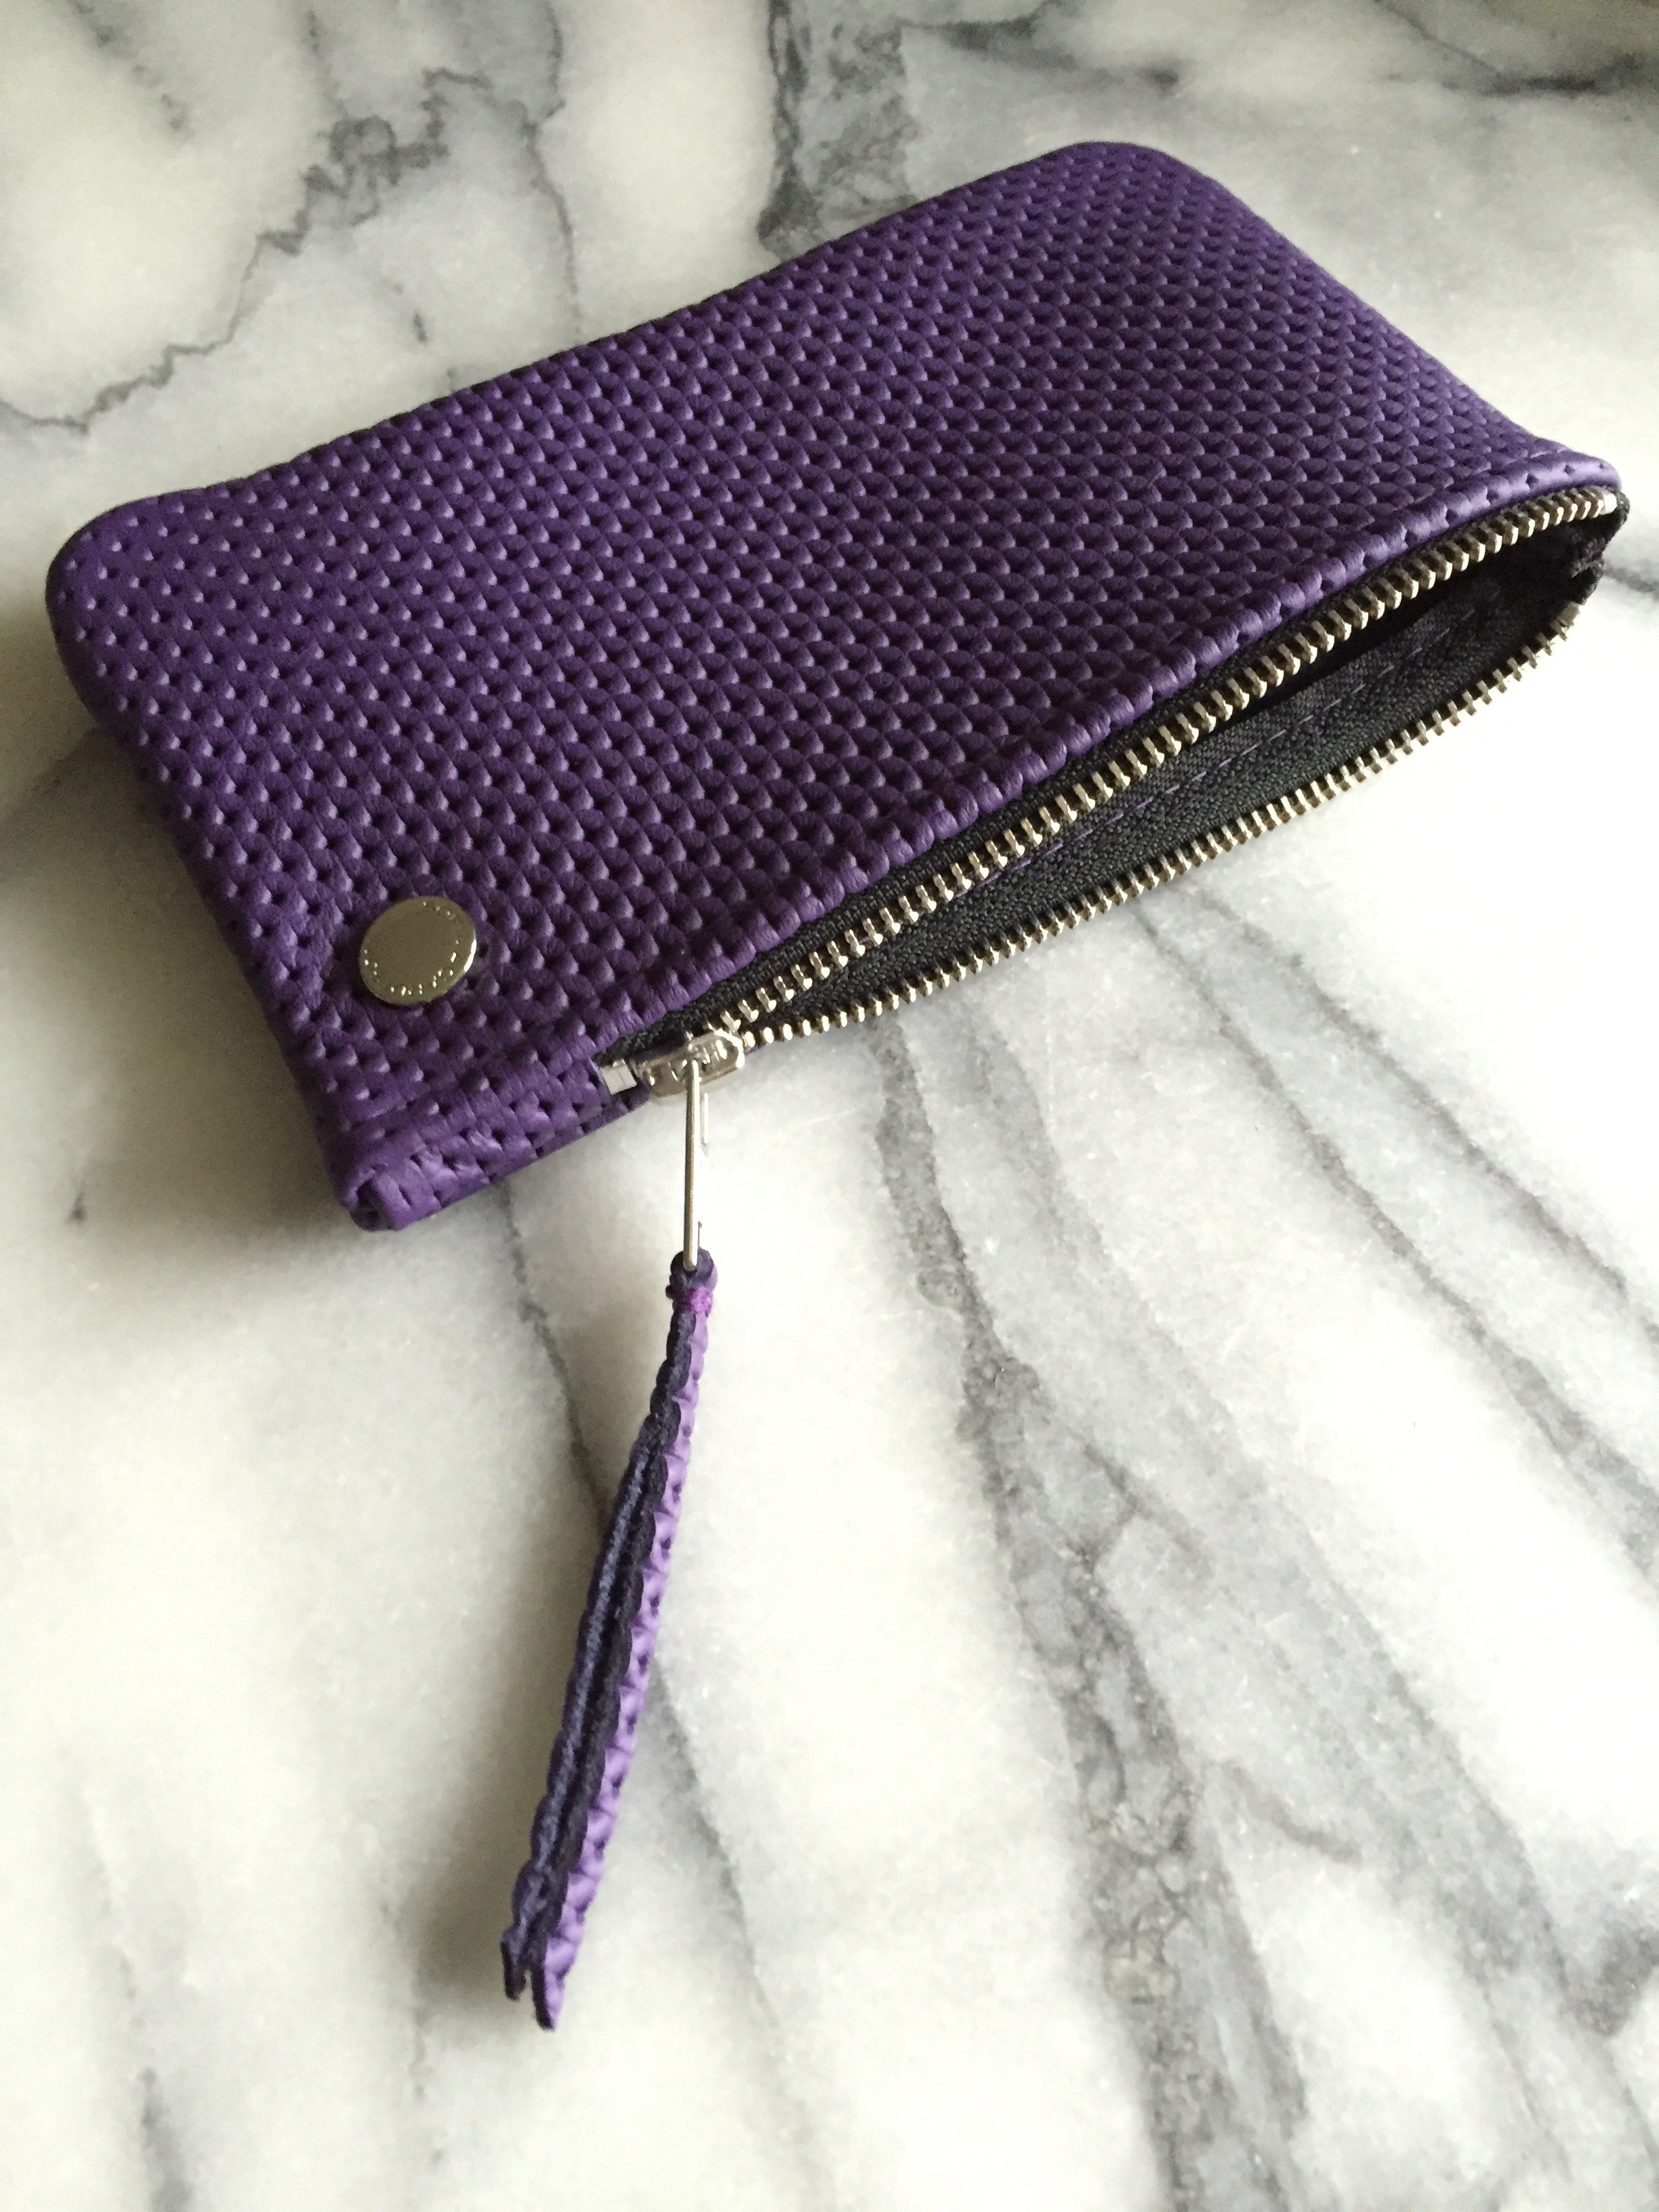 VIP iPhone Wallet - Purple Perforated Leather